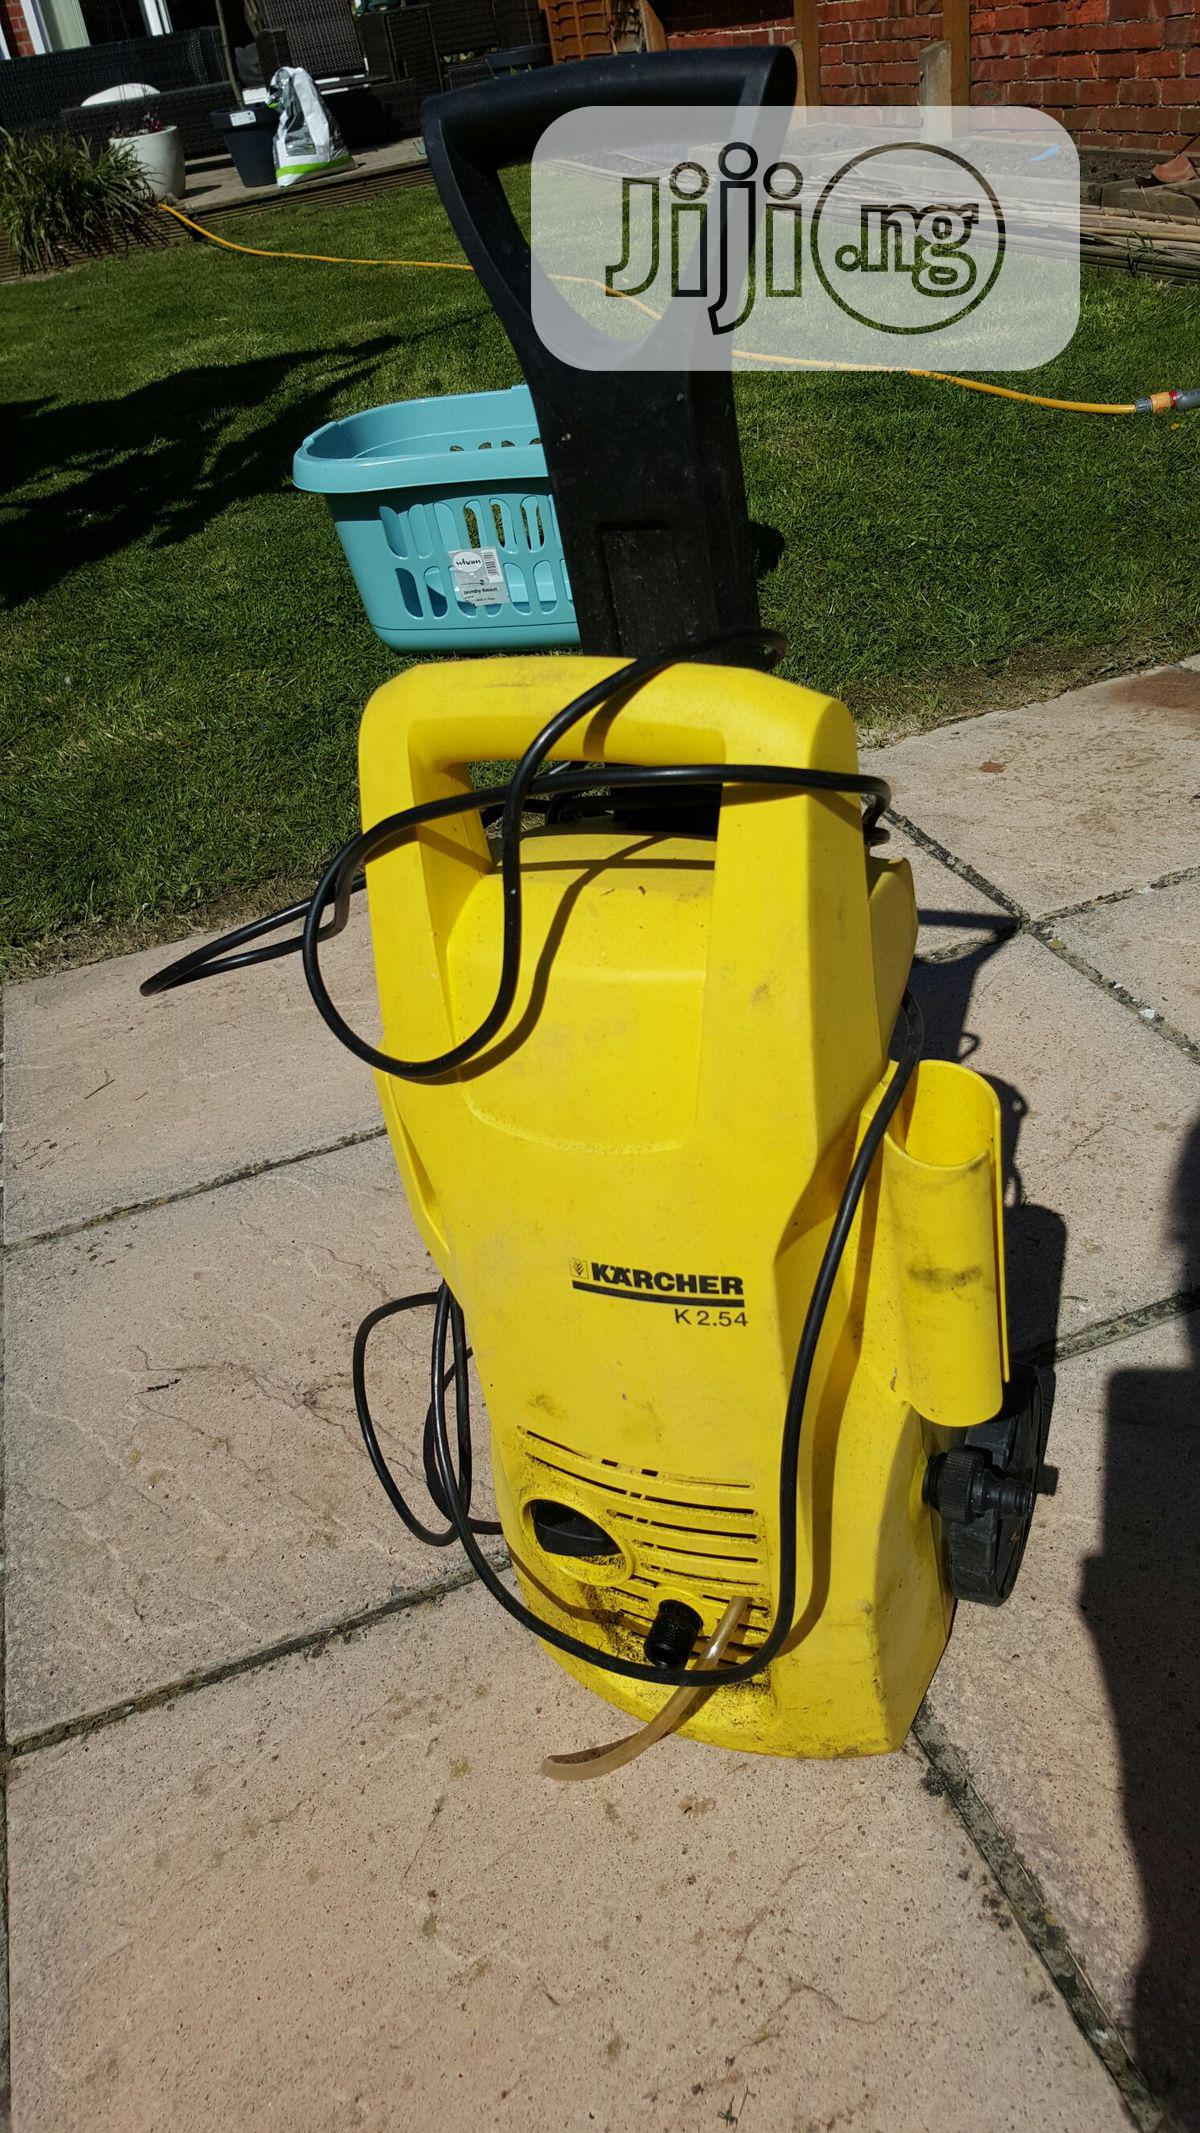 Karcher K2.54 High Pressure Washer For Domestic Uses